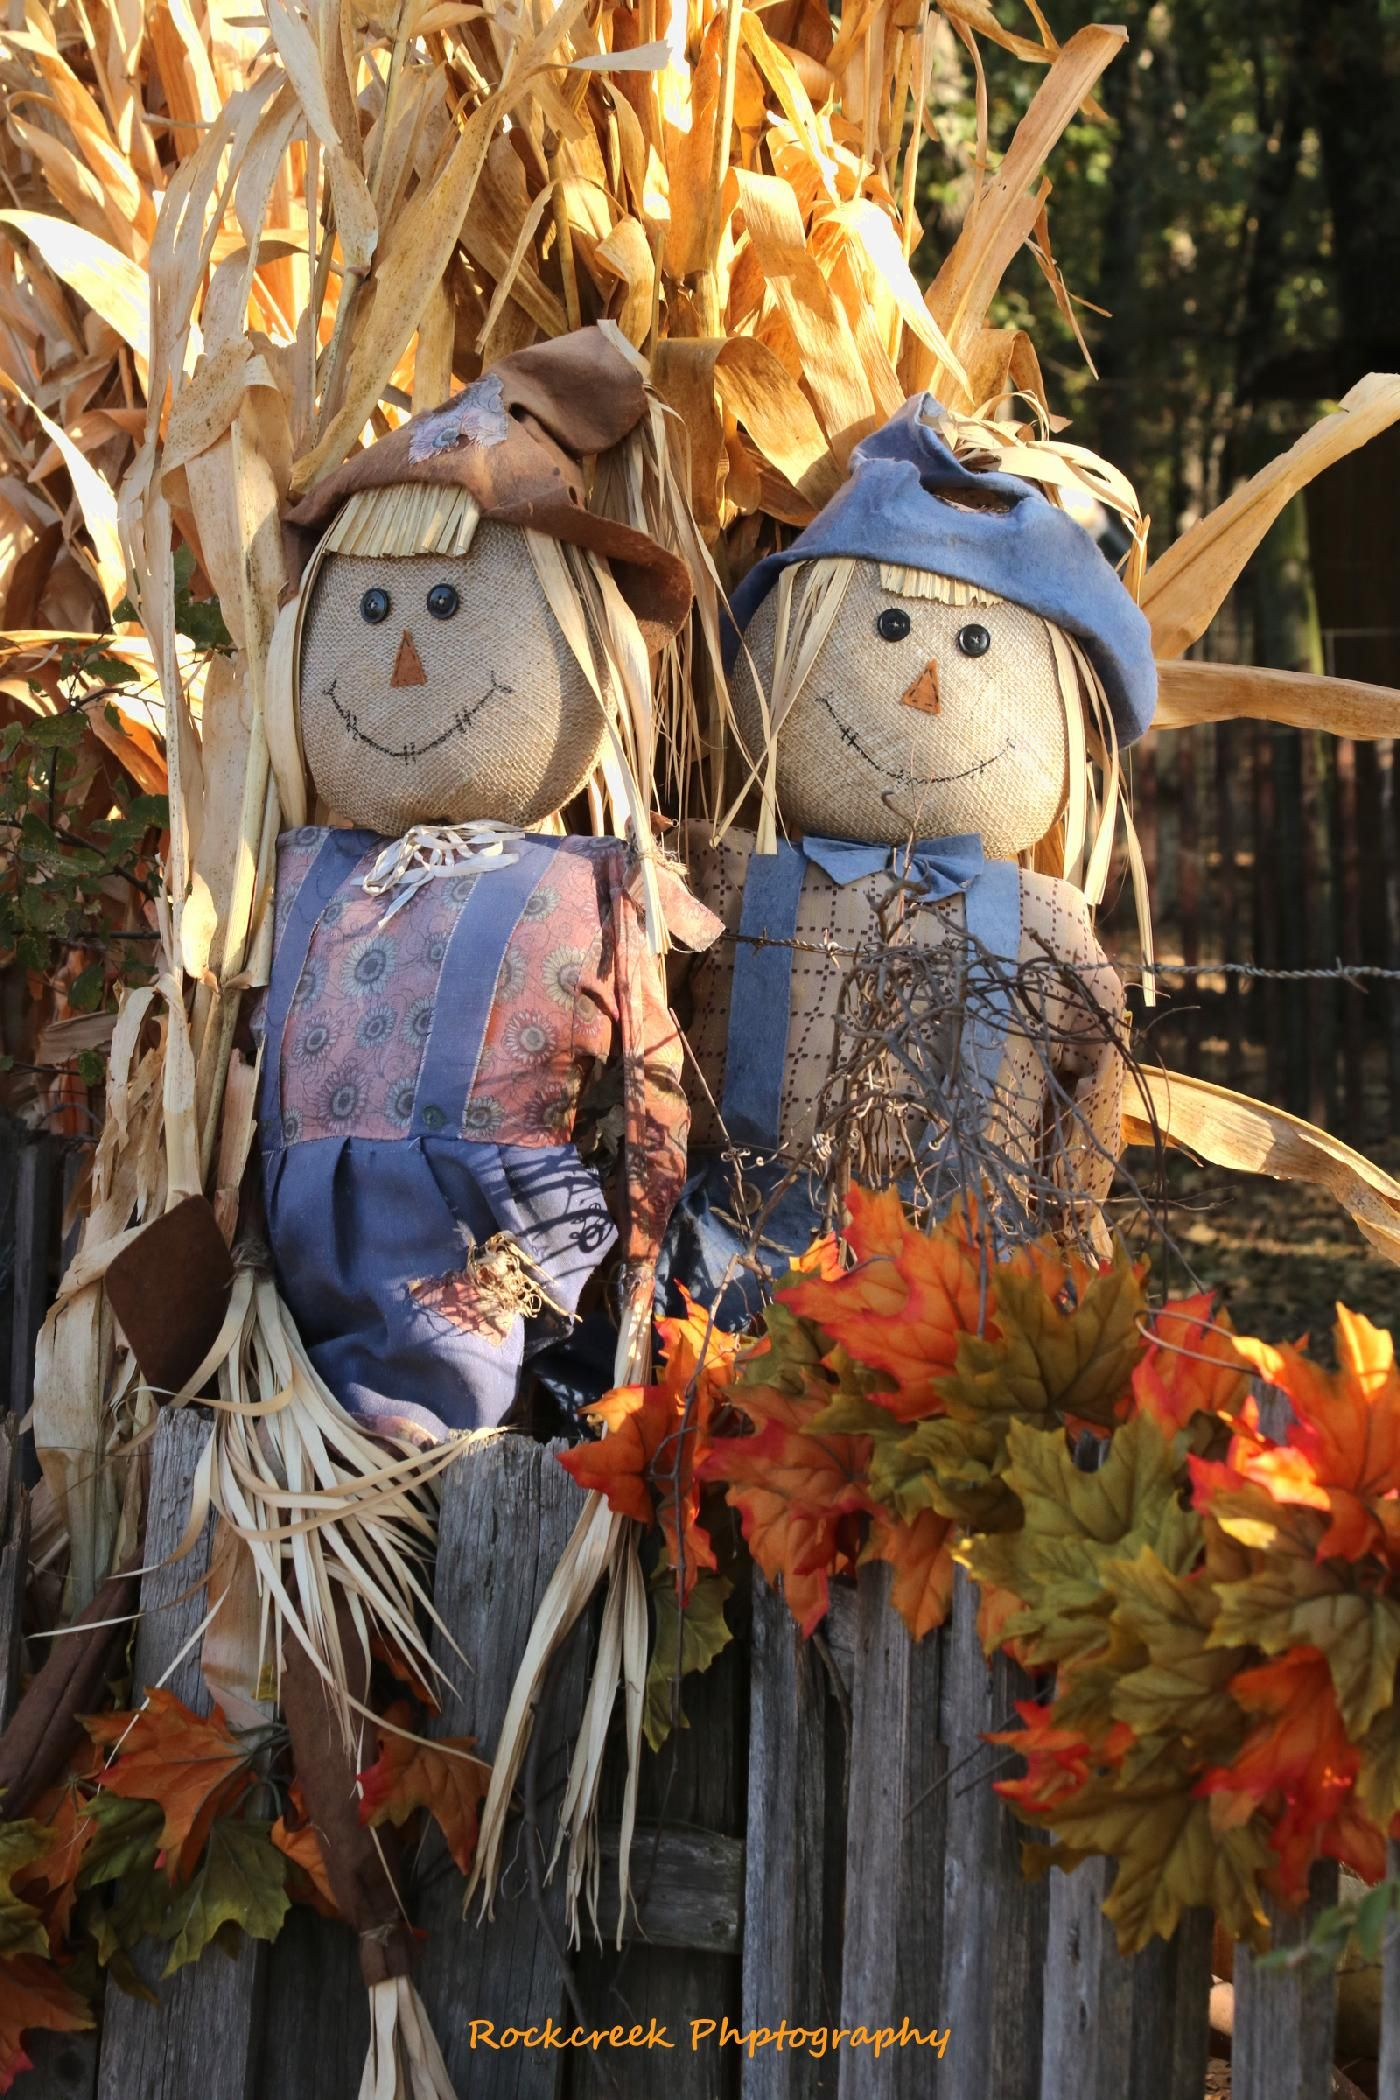 Two scarecrows dressed up as mr and mrs along with corn stalks